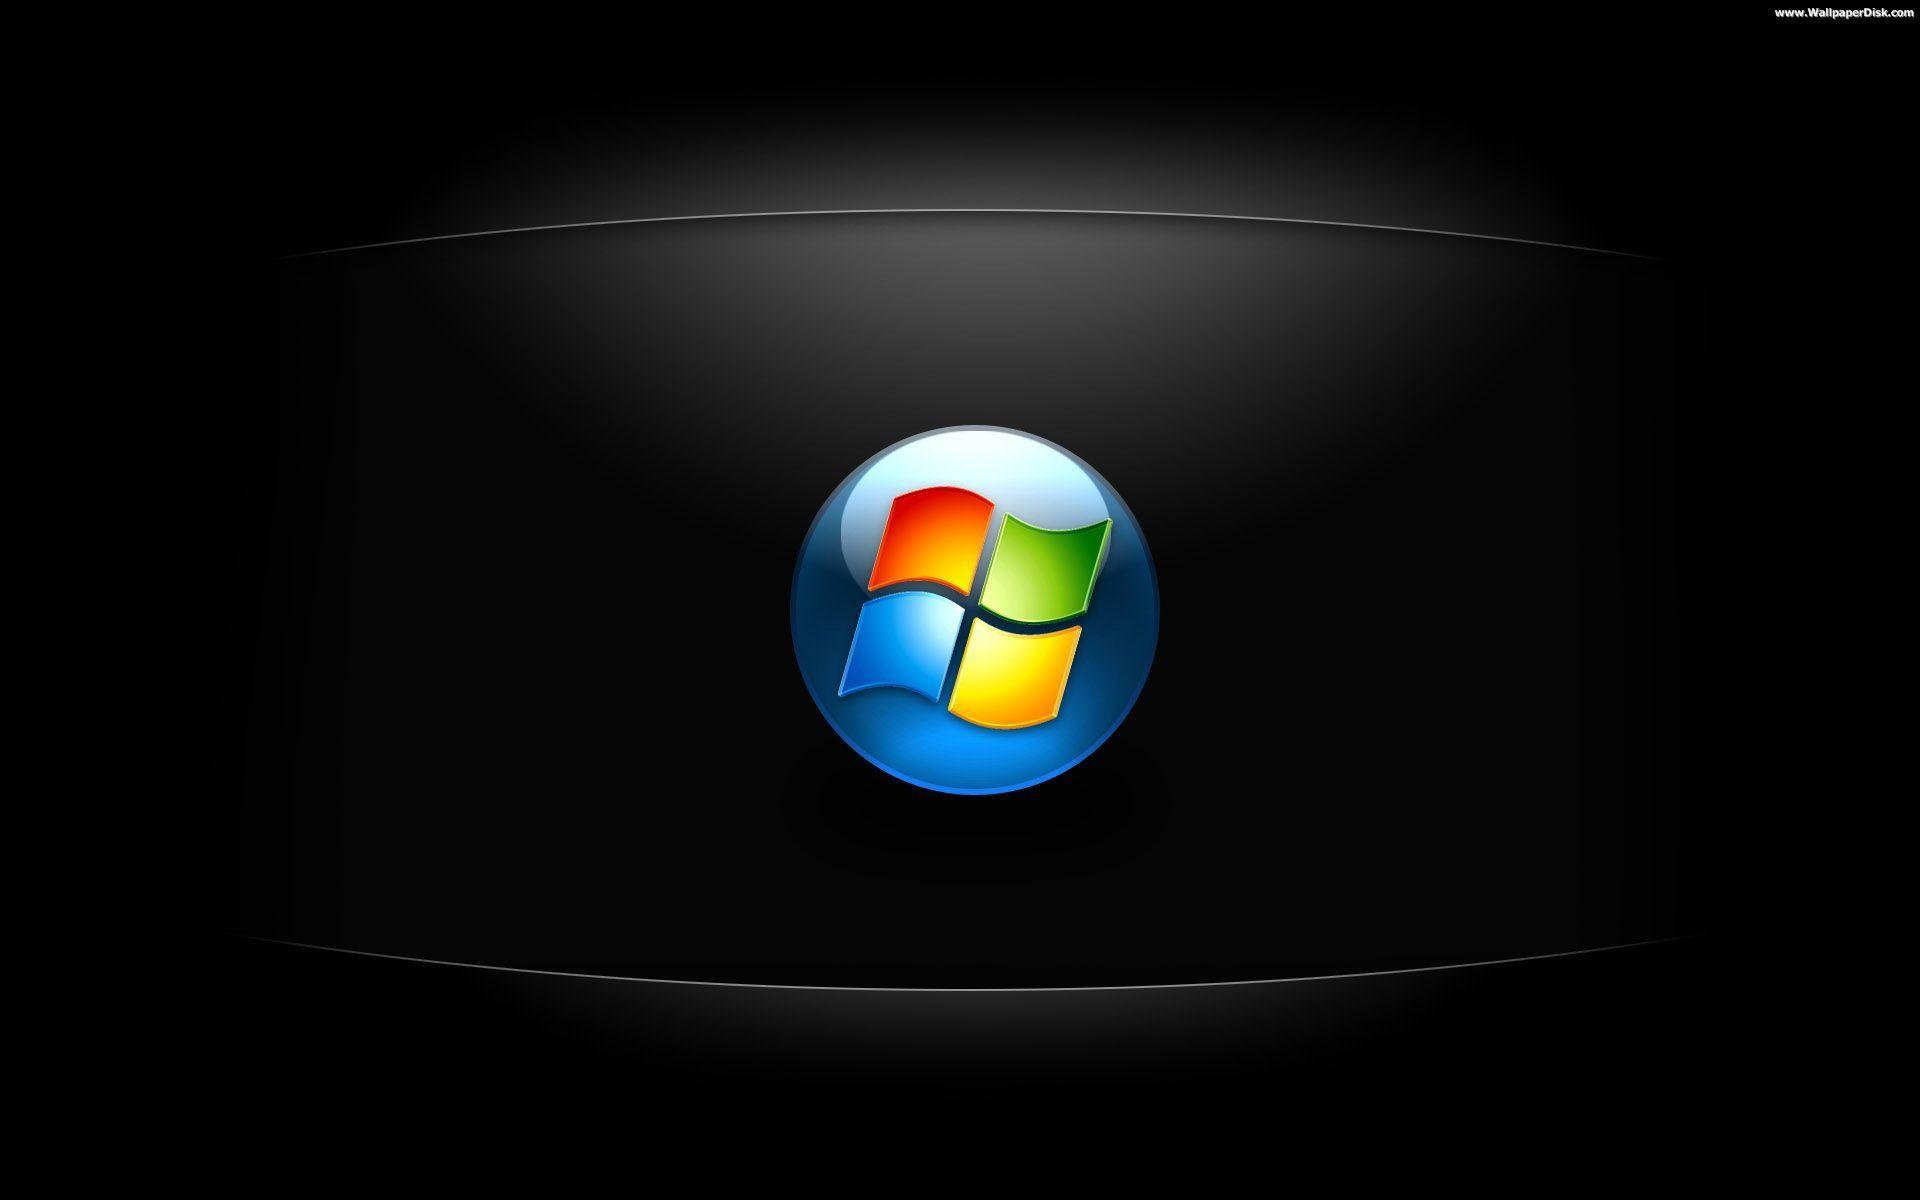 Windows 7 Wallpaper Hd Wallpaper